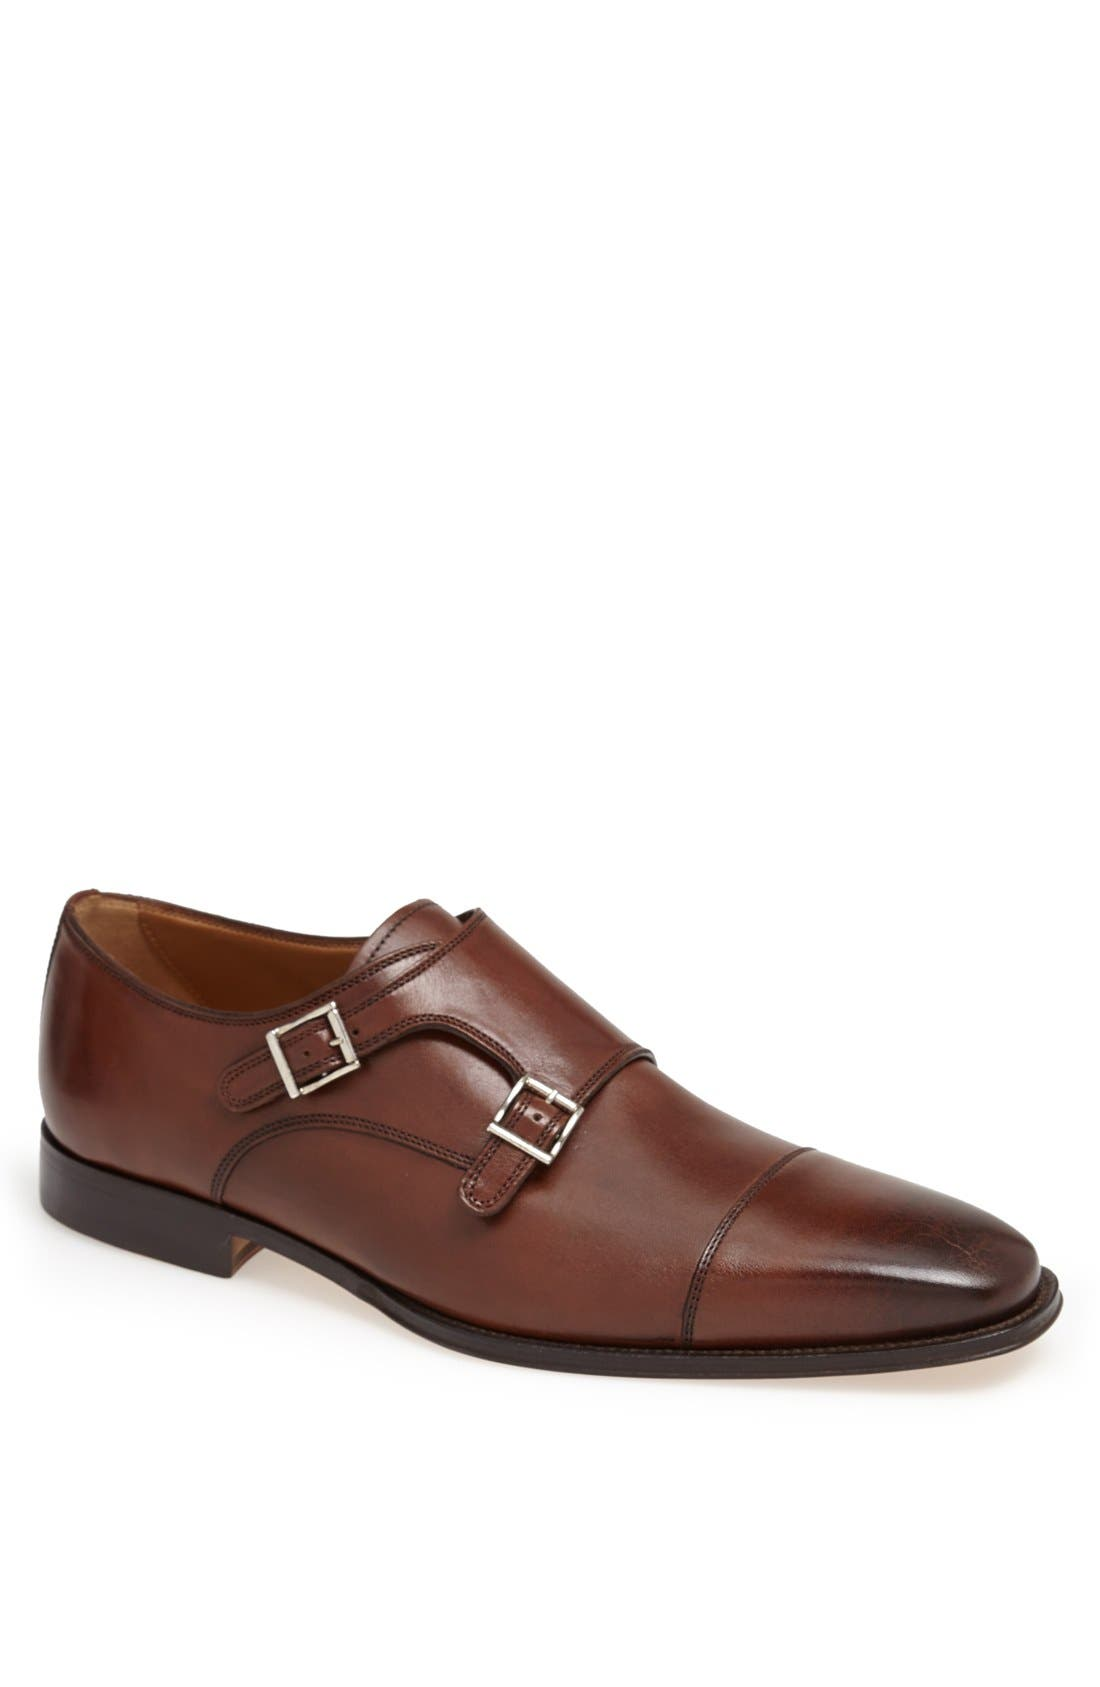 Monk Strap Shoes for Men On Sale, Dark Brown, Leather, 2017, 6 6.5 7 7.5 8 8.5 9 9.5 Moreschi